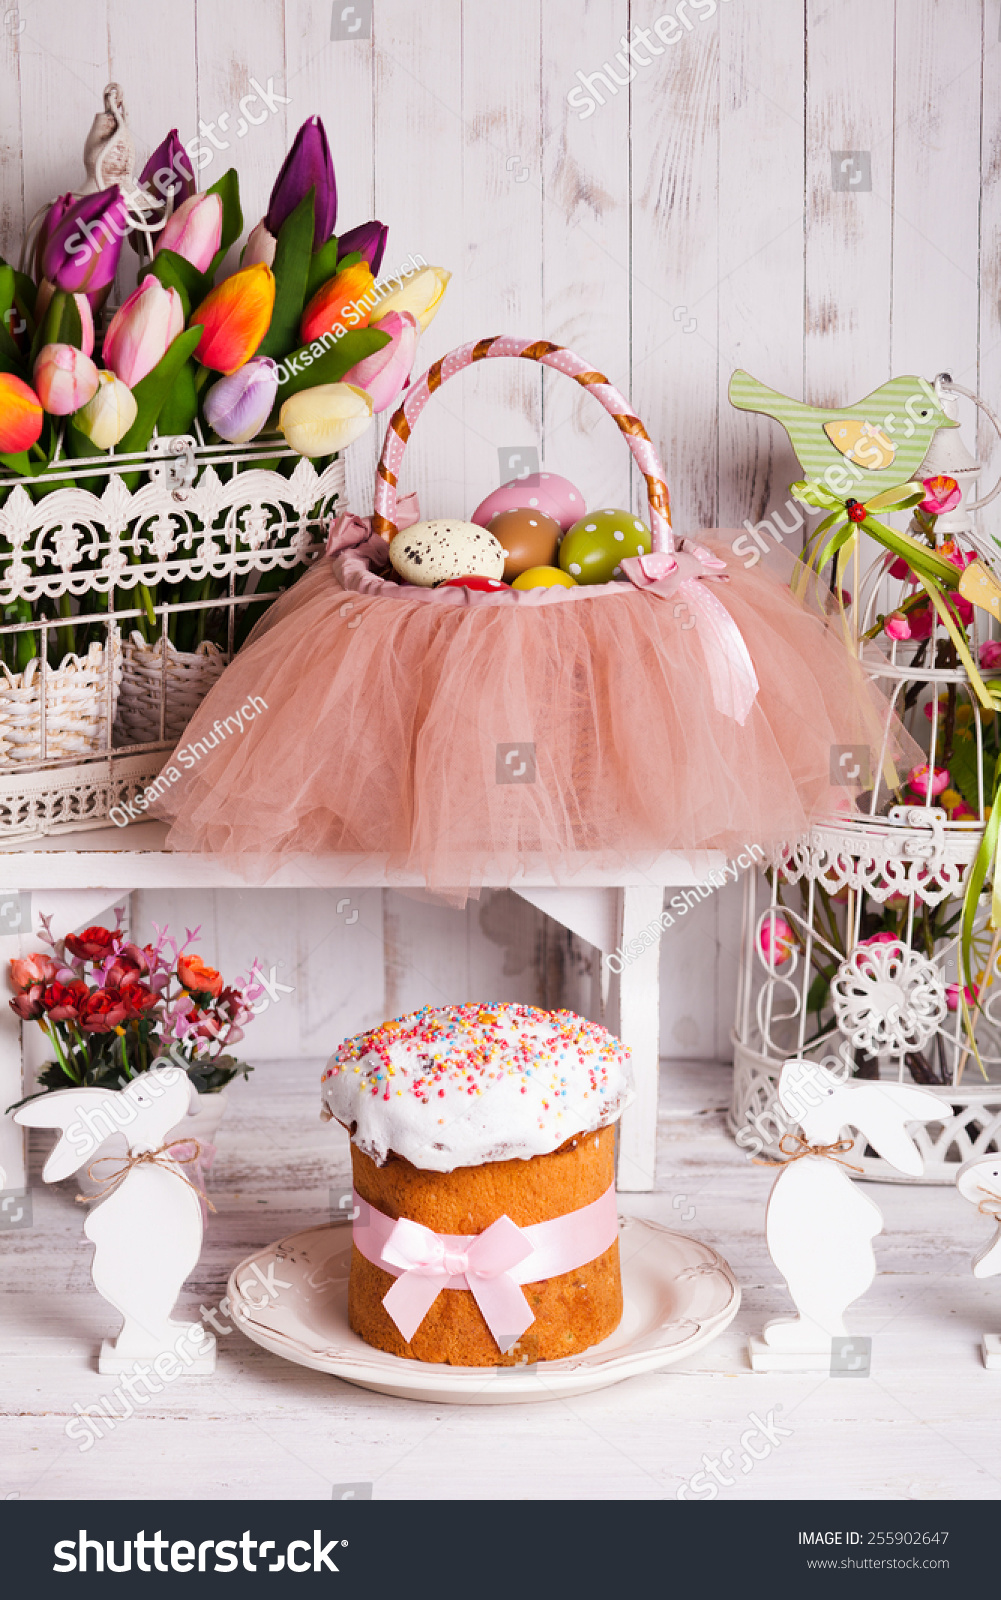 Easter Decorations Spring Flowers Rabbits Cake And Tutu Basket